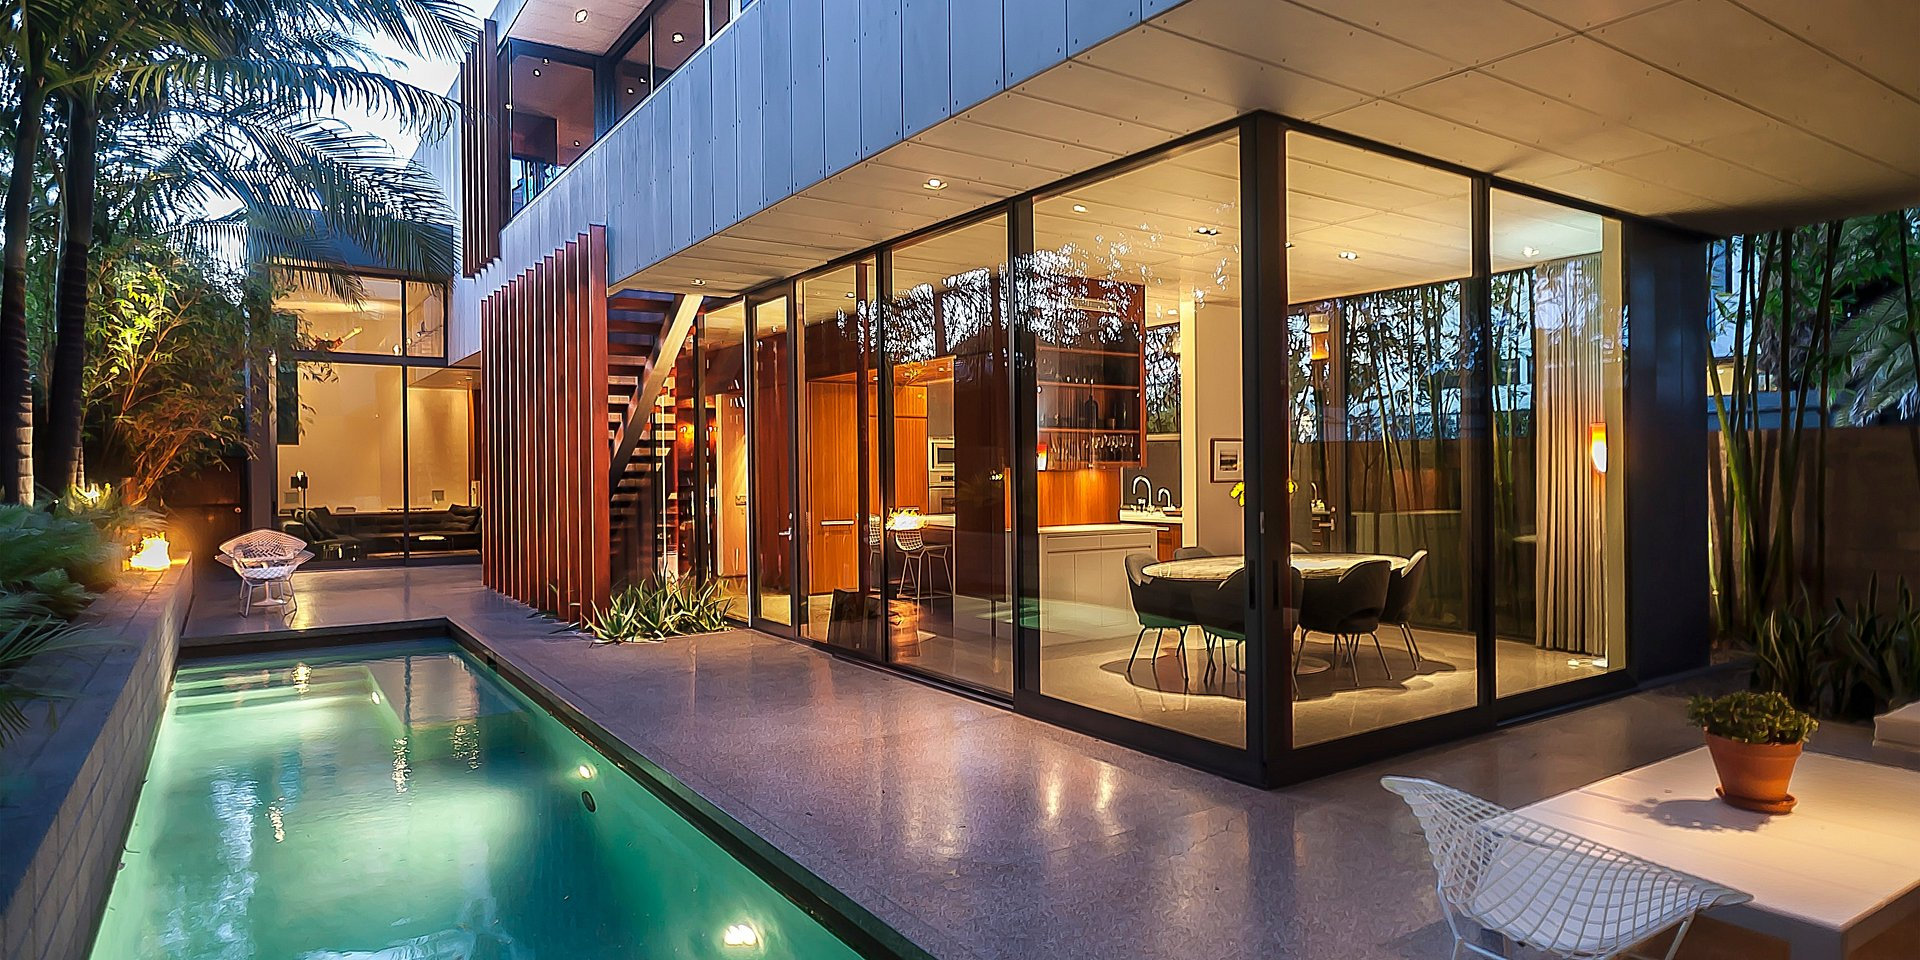 Coldwell Banker Realty Lists Venice Property Designed by Architect Steven Shortridge for $4.995 Million